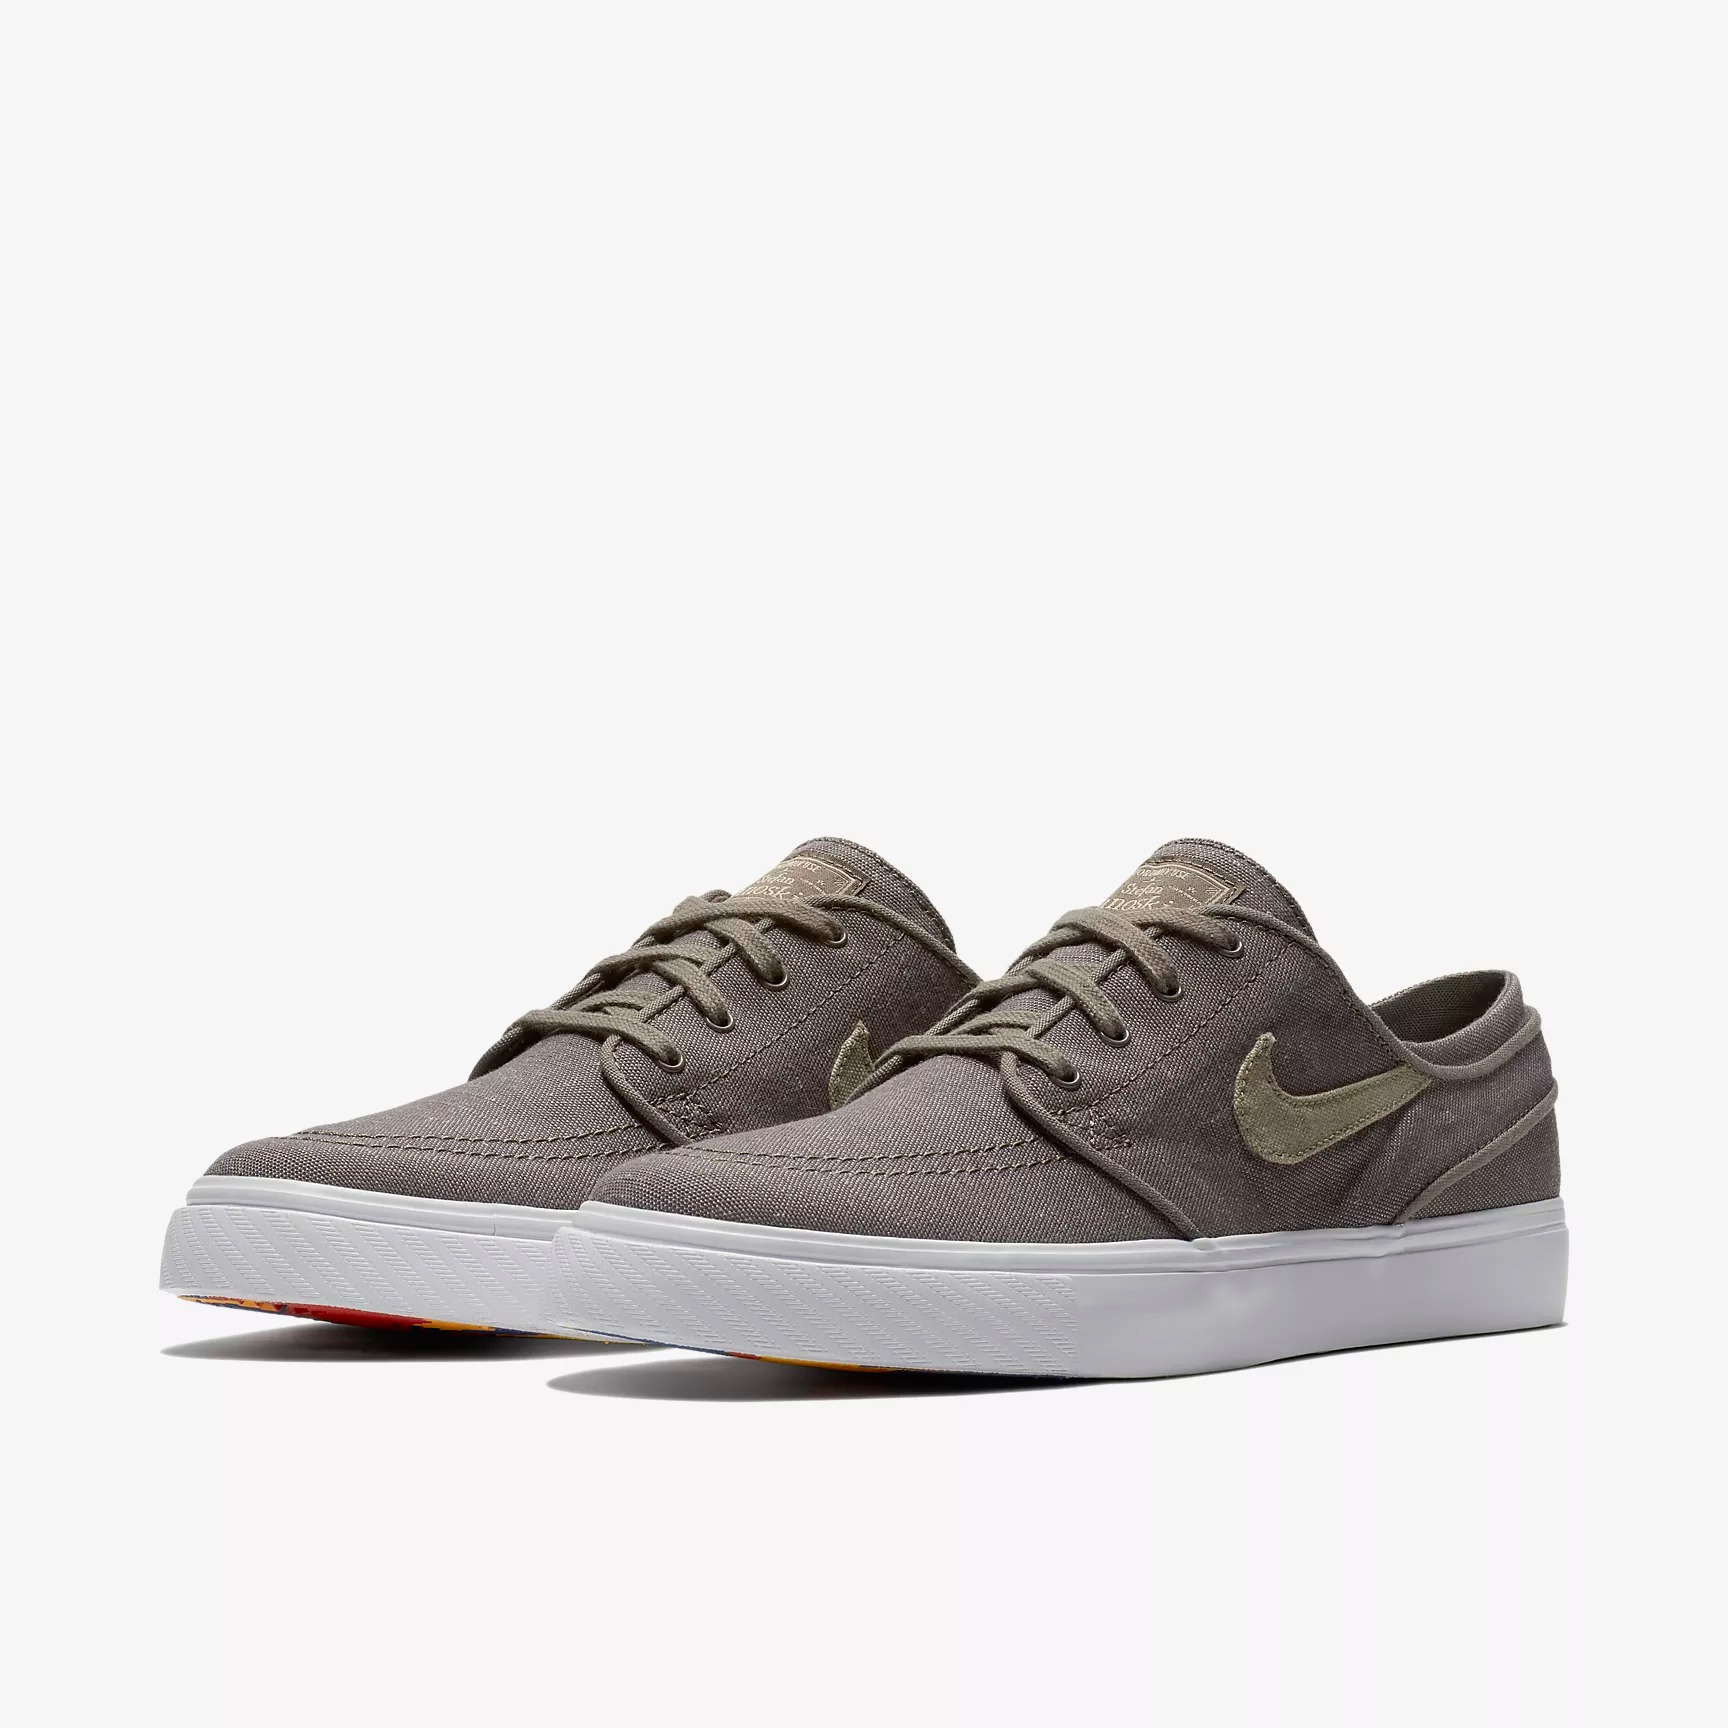 30ff69a6af Nike SB Zoom Stefan Janoski Canvas Deconstructed Sneakers - SPORT SHOES  Lifestyle Shoes